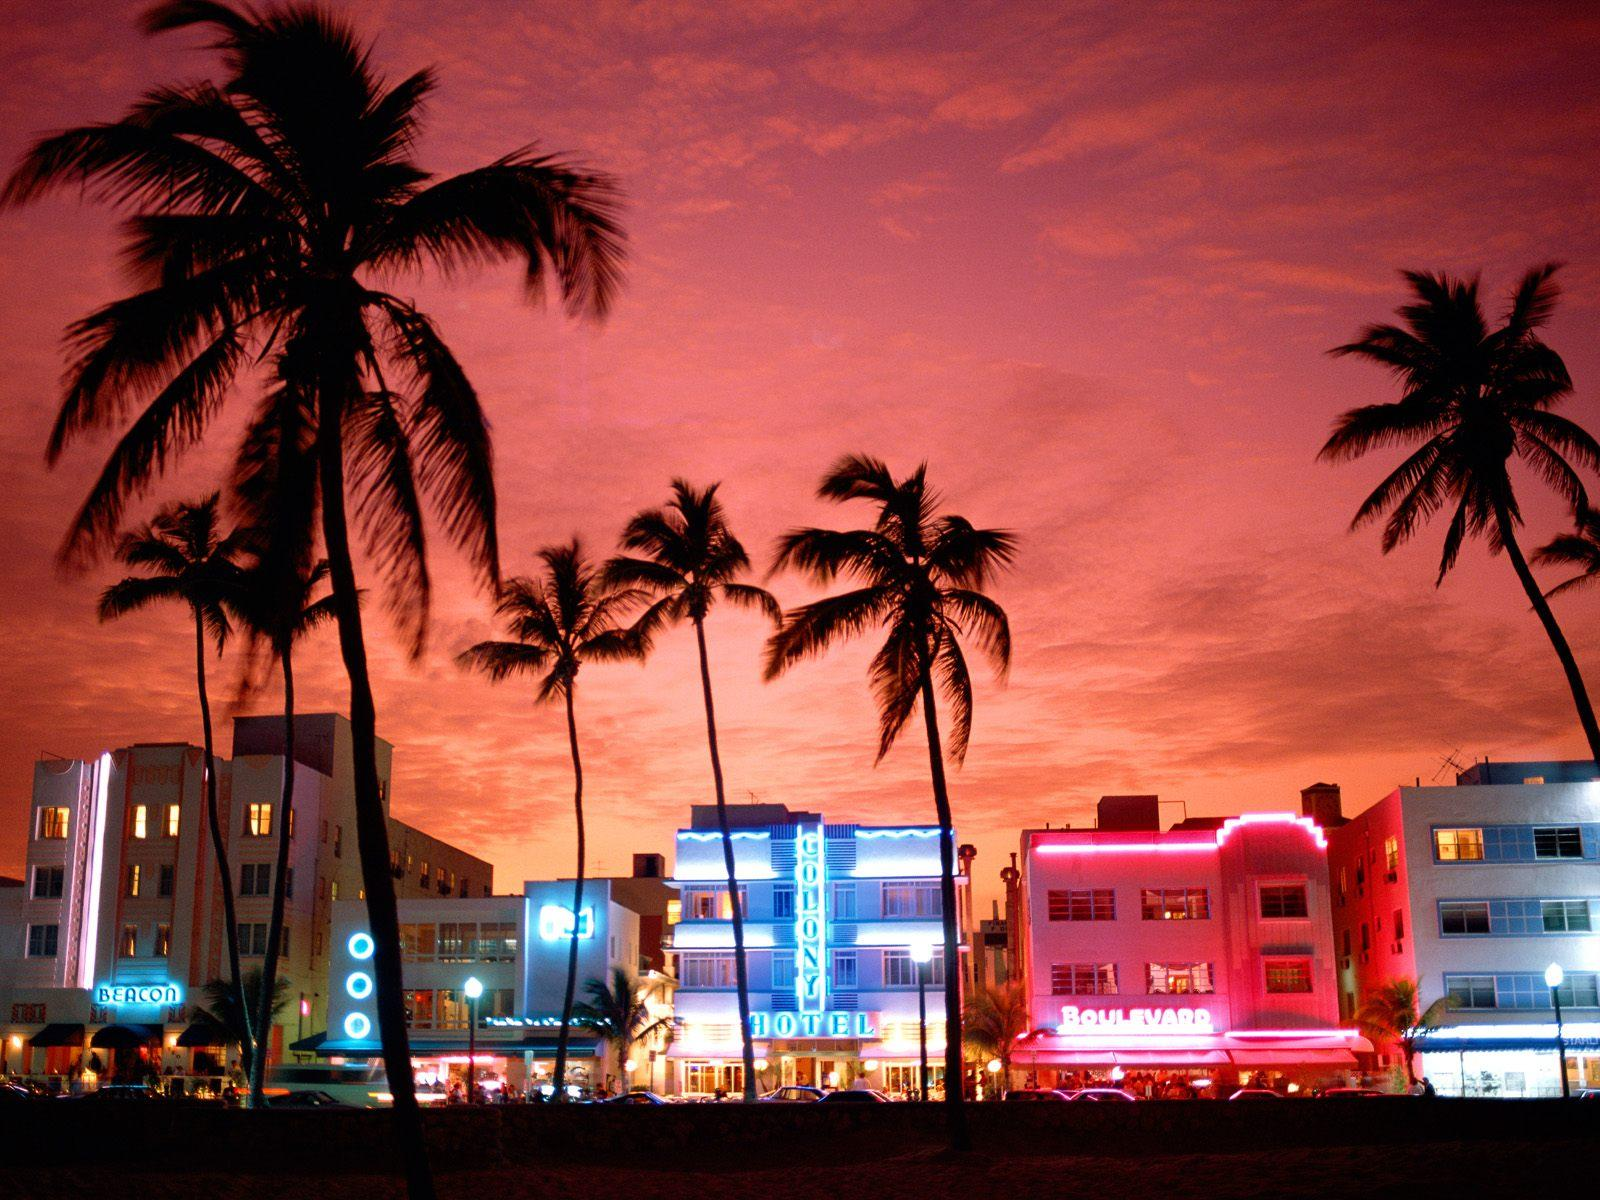 The Best Night Clubs In Miami Are All Located Right Here On Beach Which Makes It Place To Be As Soon Sun Goes Down